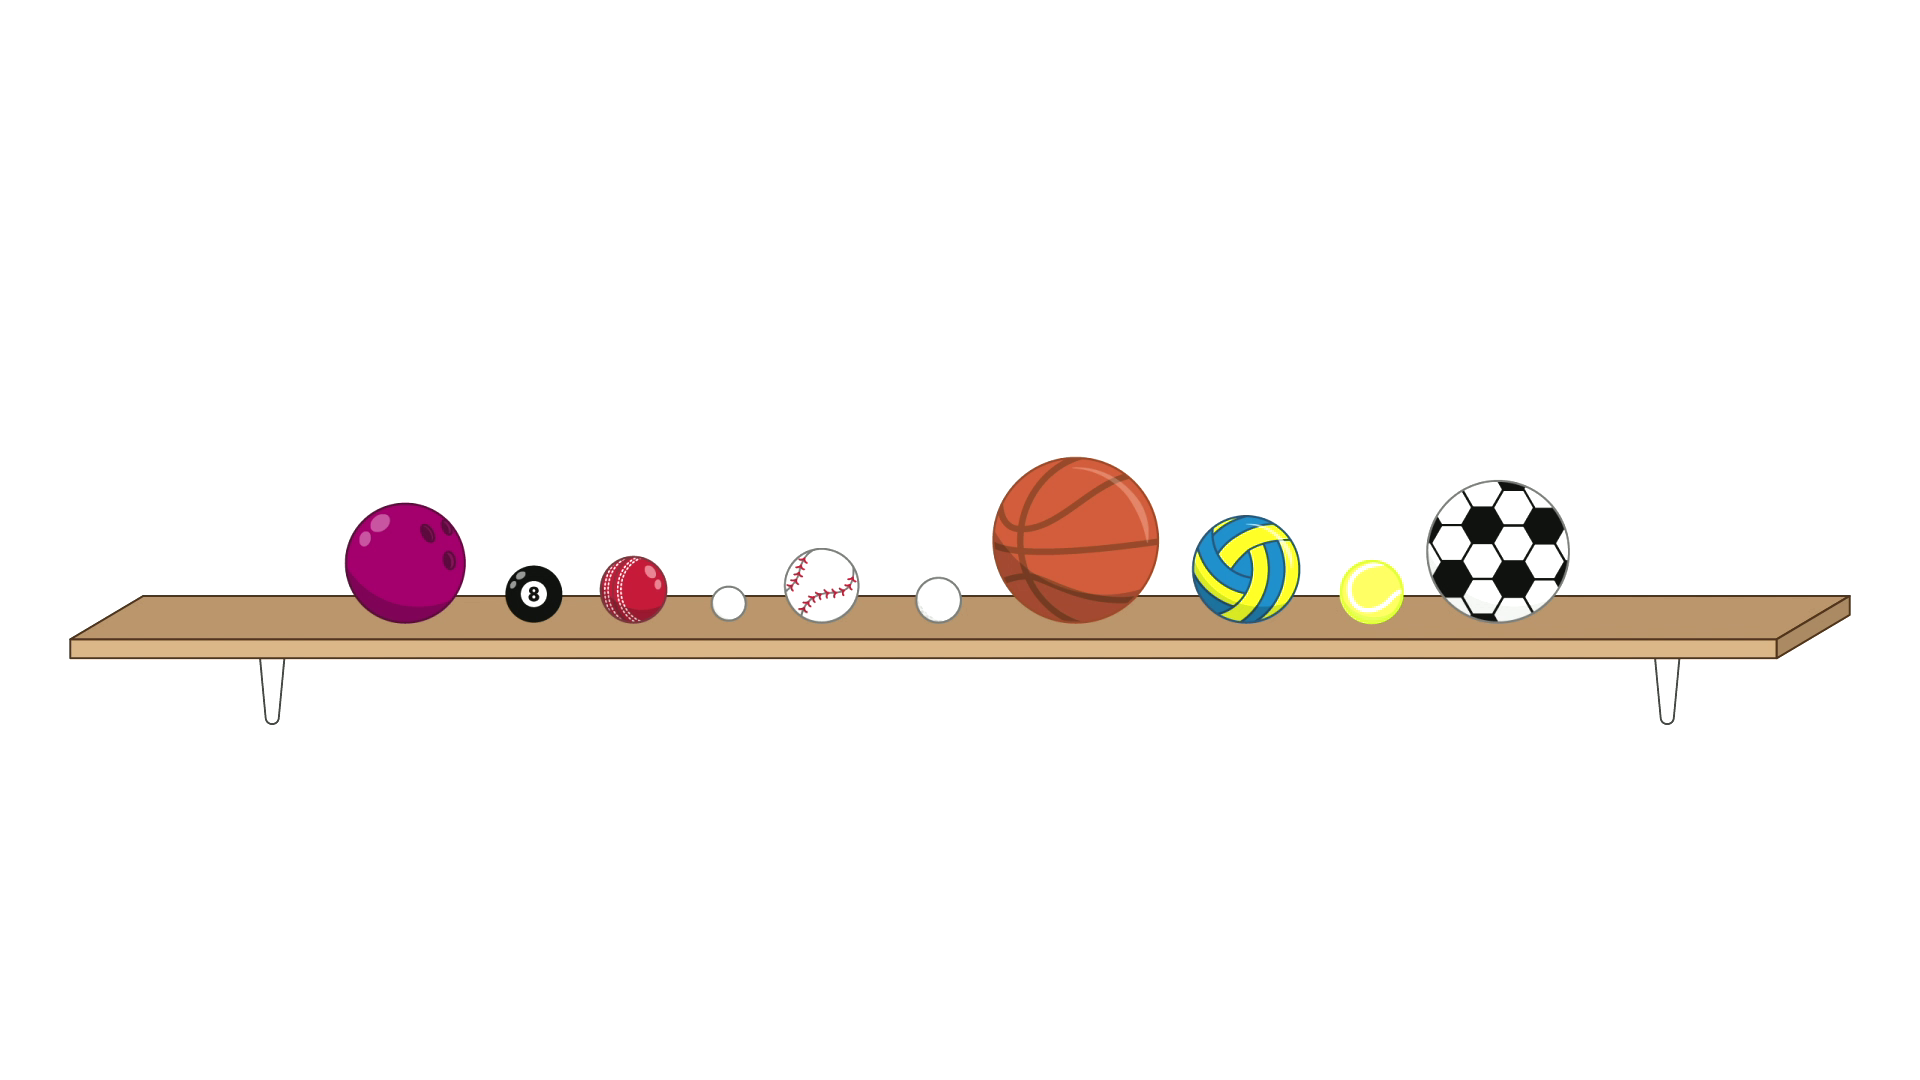 10 balls on a shelf. The balls are, in order, a bowling ball, a pool ball, a cricket ball, a ping pong ball, a baseball, a golf ball, a basketball, a netball, a tennis ball, and a football (soccer ball)